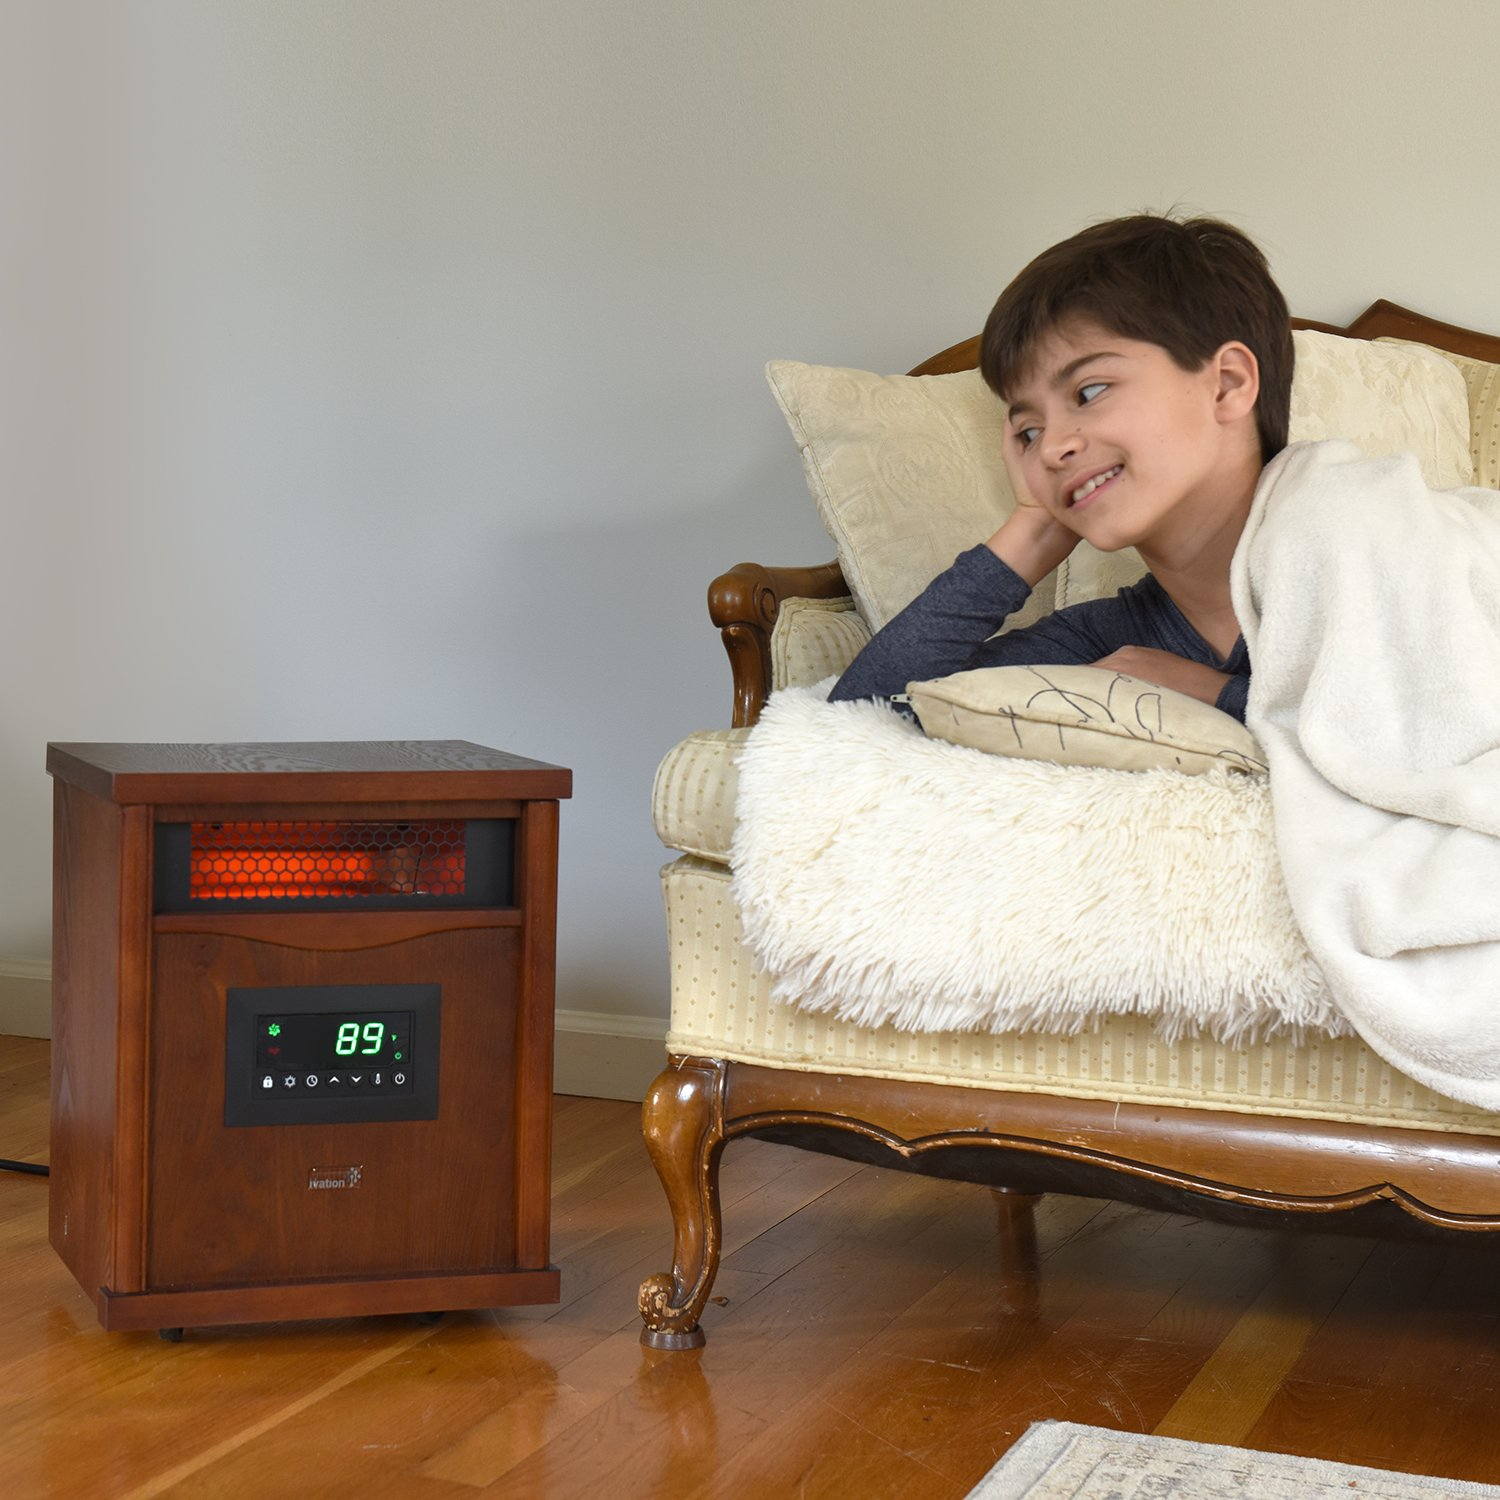 Ivation Portable Electric Space Heater, 1500-Watt 6-Element Infrared Quartz Mini Heater With Digital Thermostat, Remote Control, Timer & Filter by Ivation (Image #5)